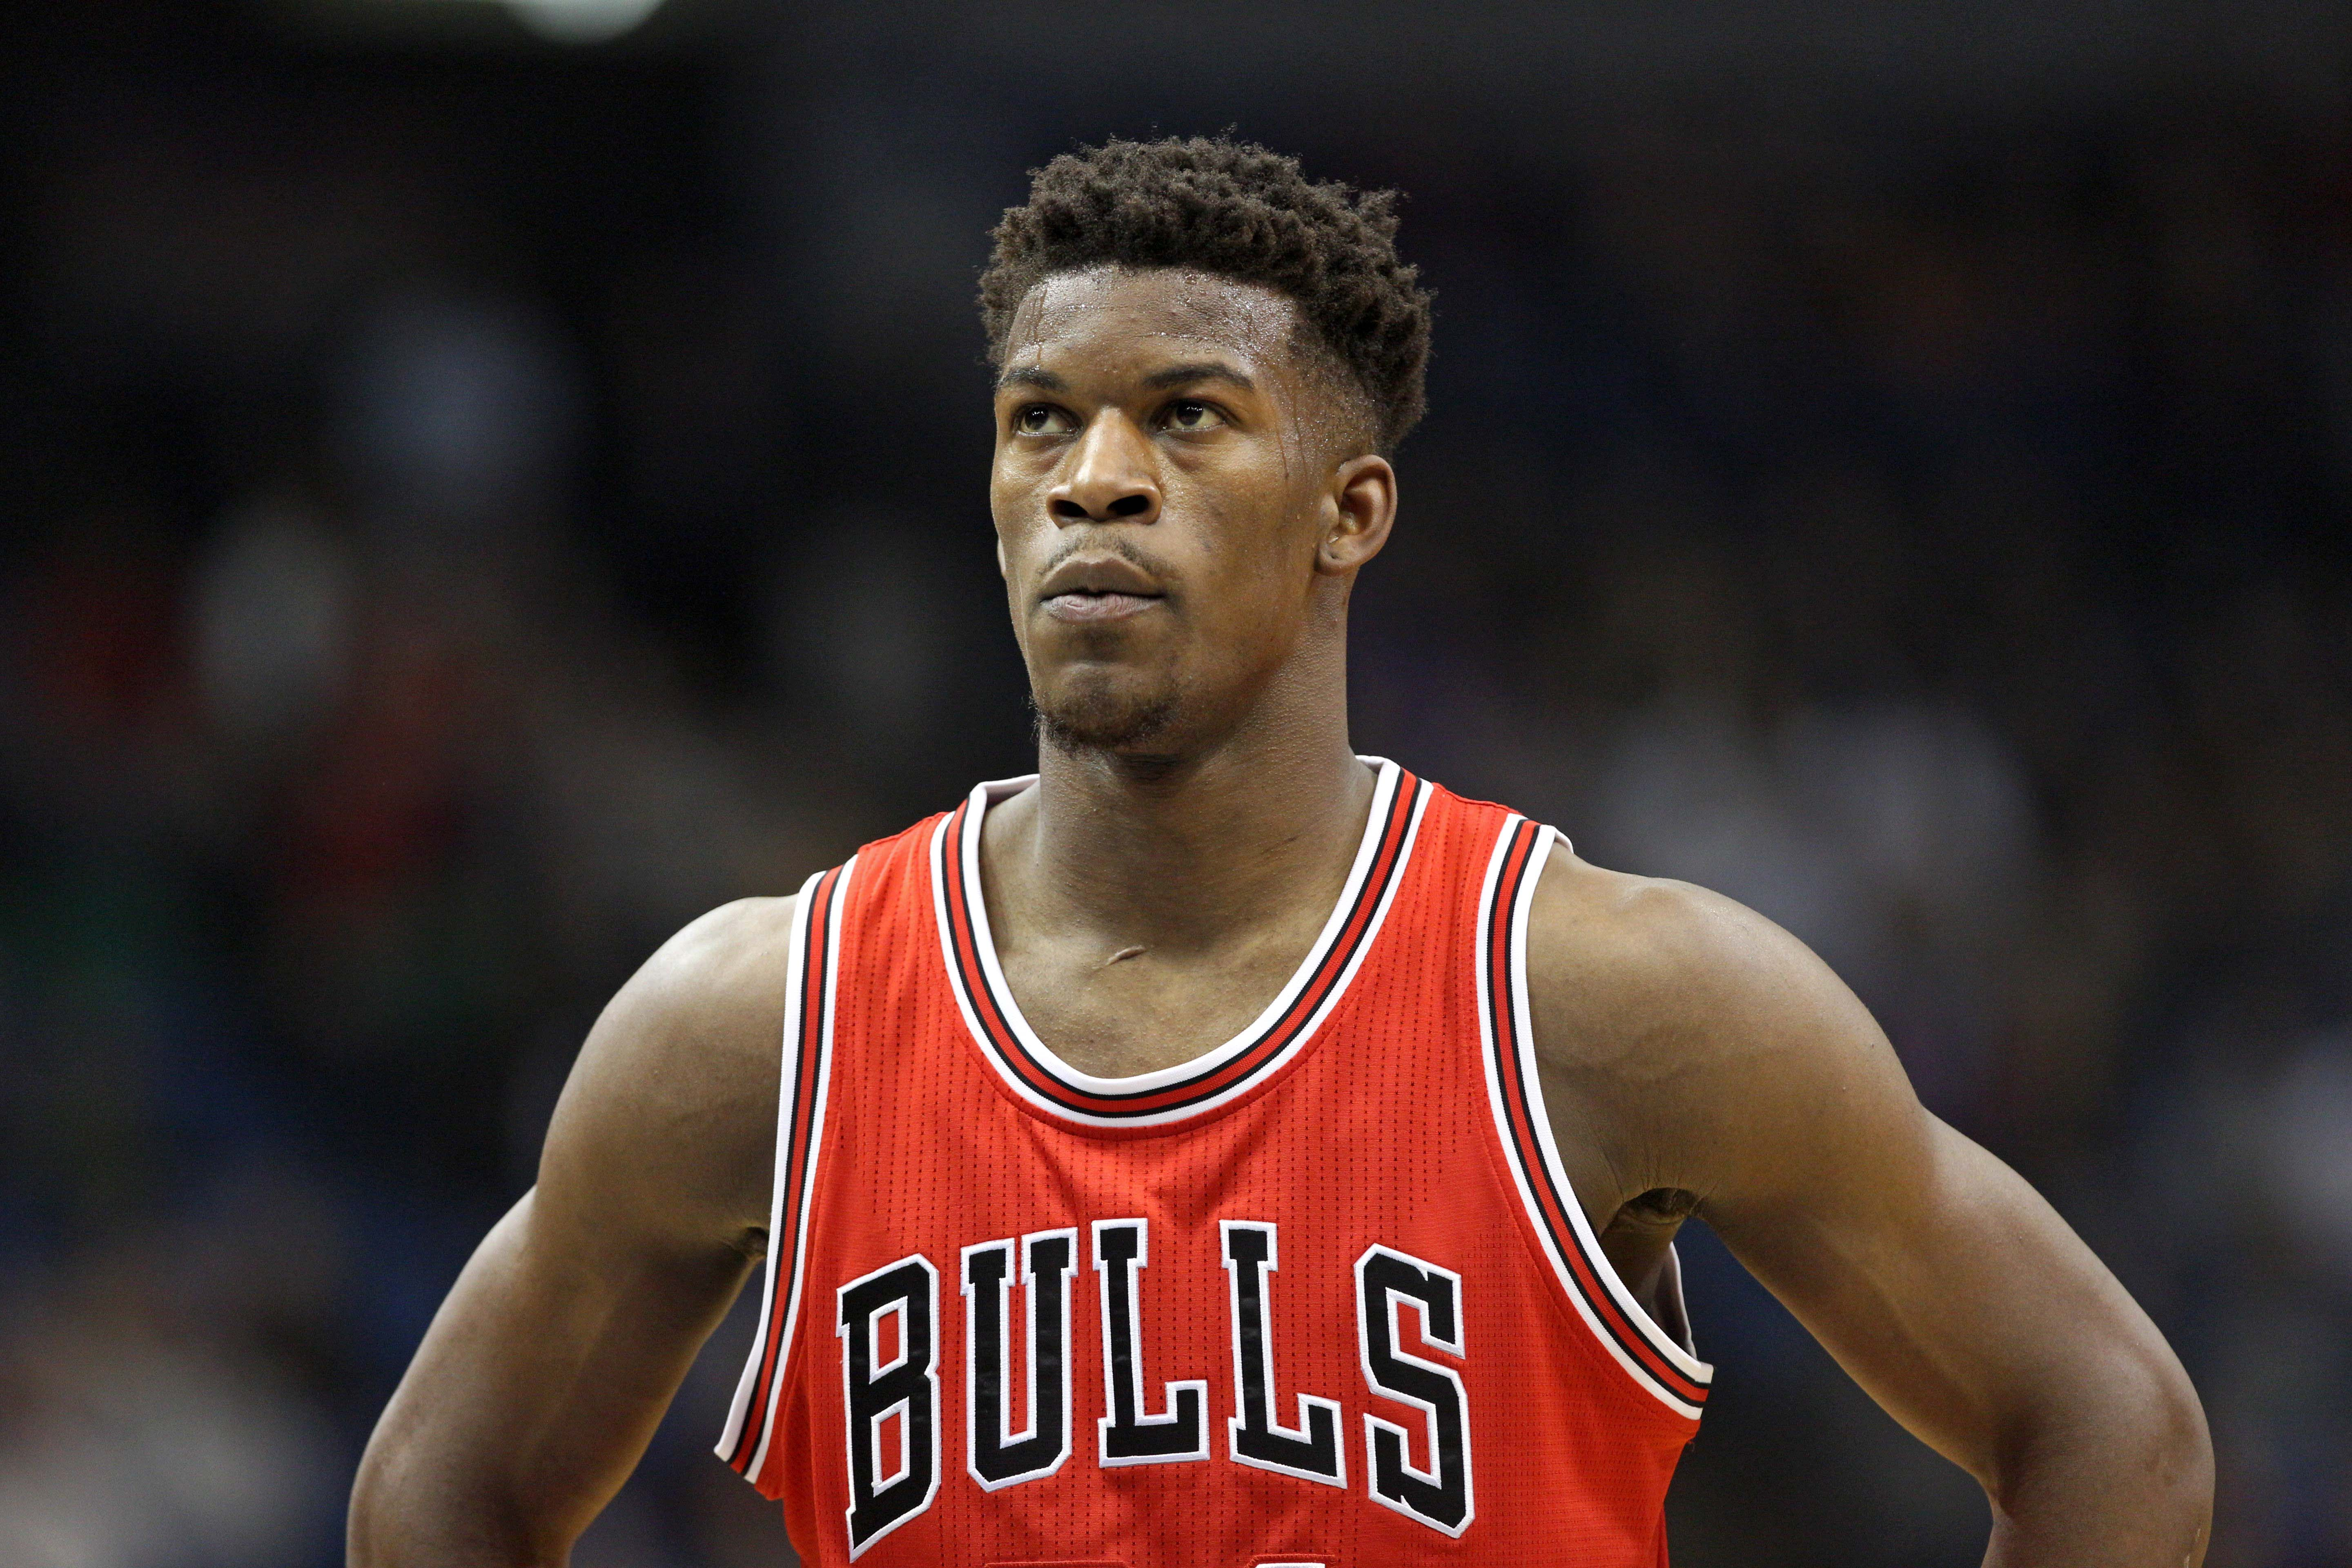 Jimmy Butler Wallpapers High Resolution and Quality Download 5760x3840